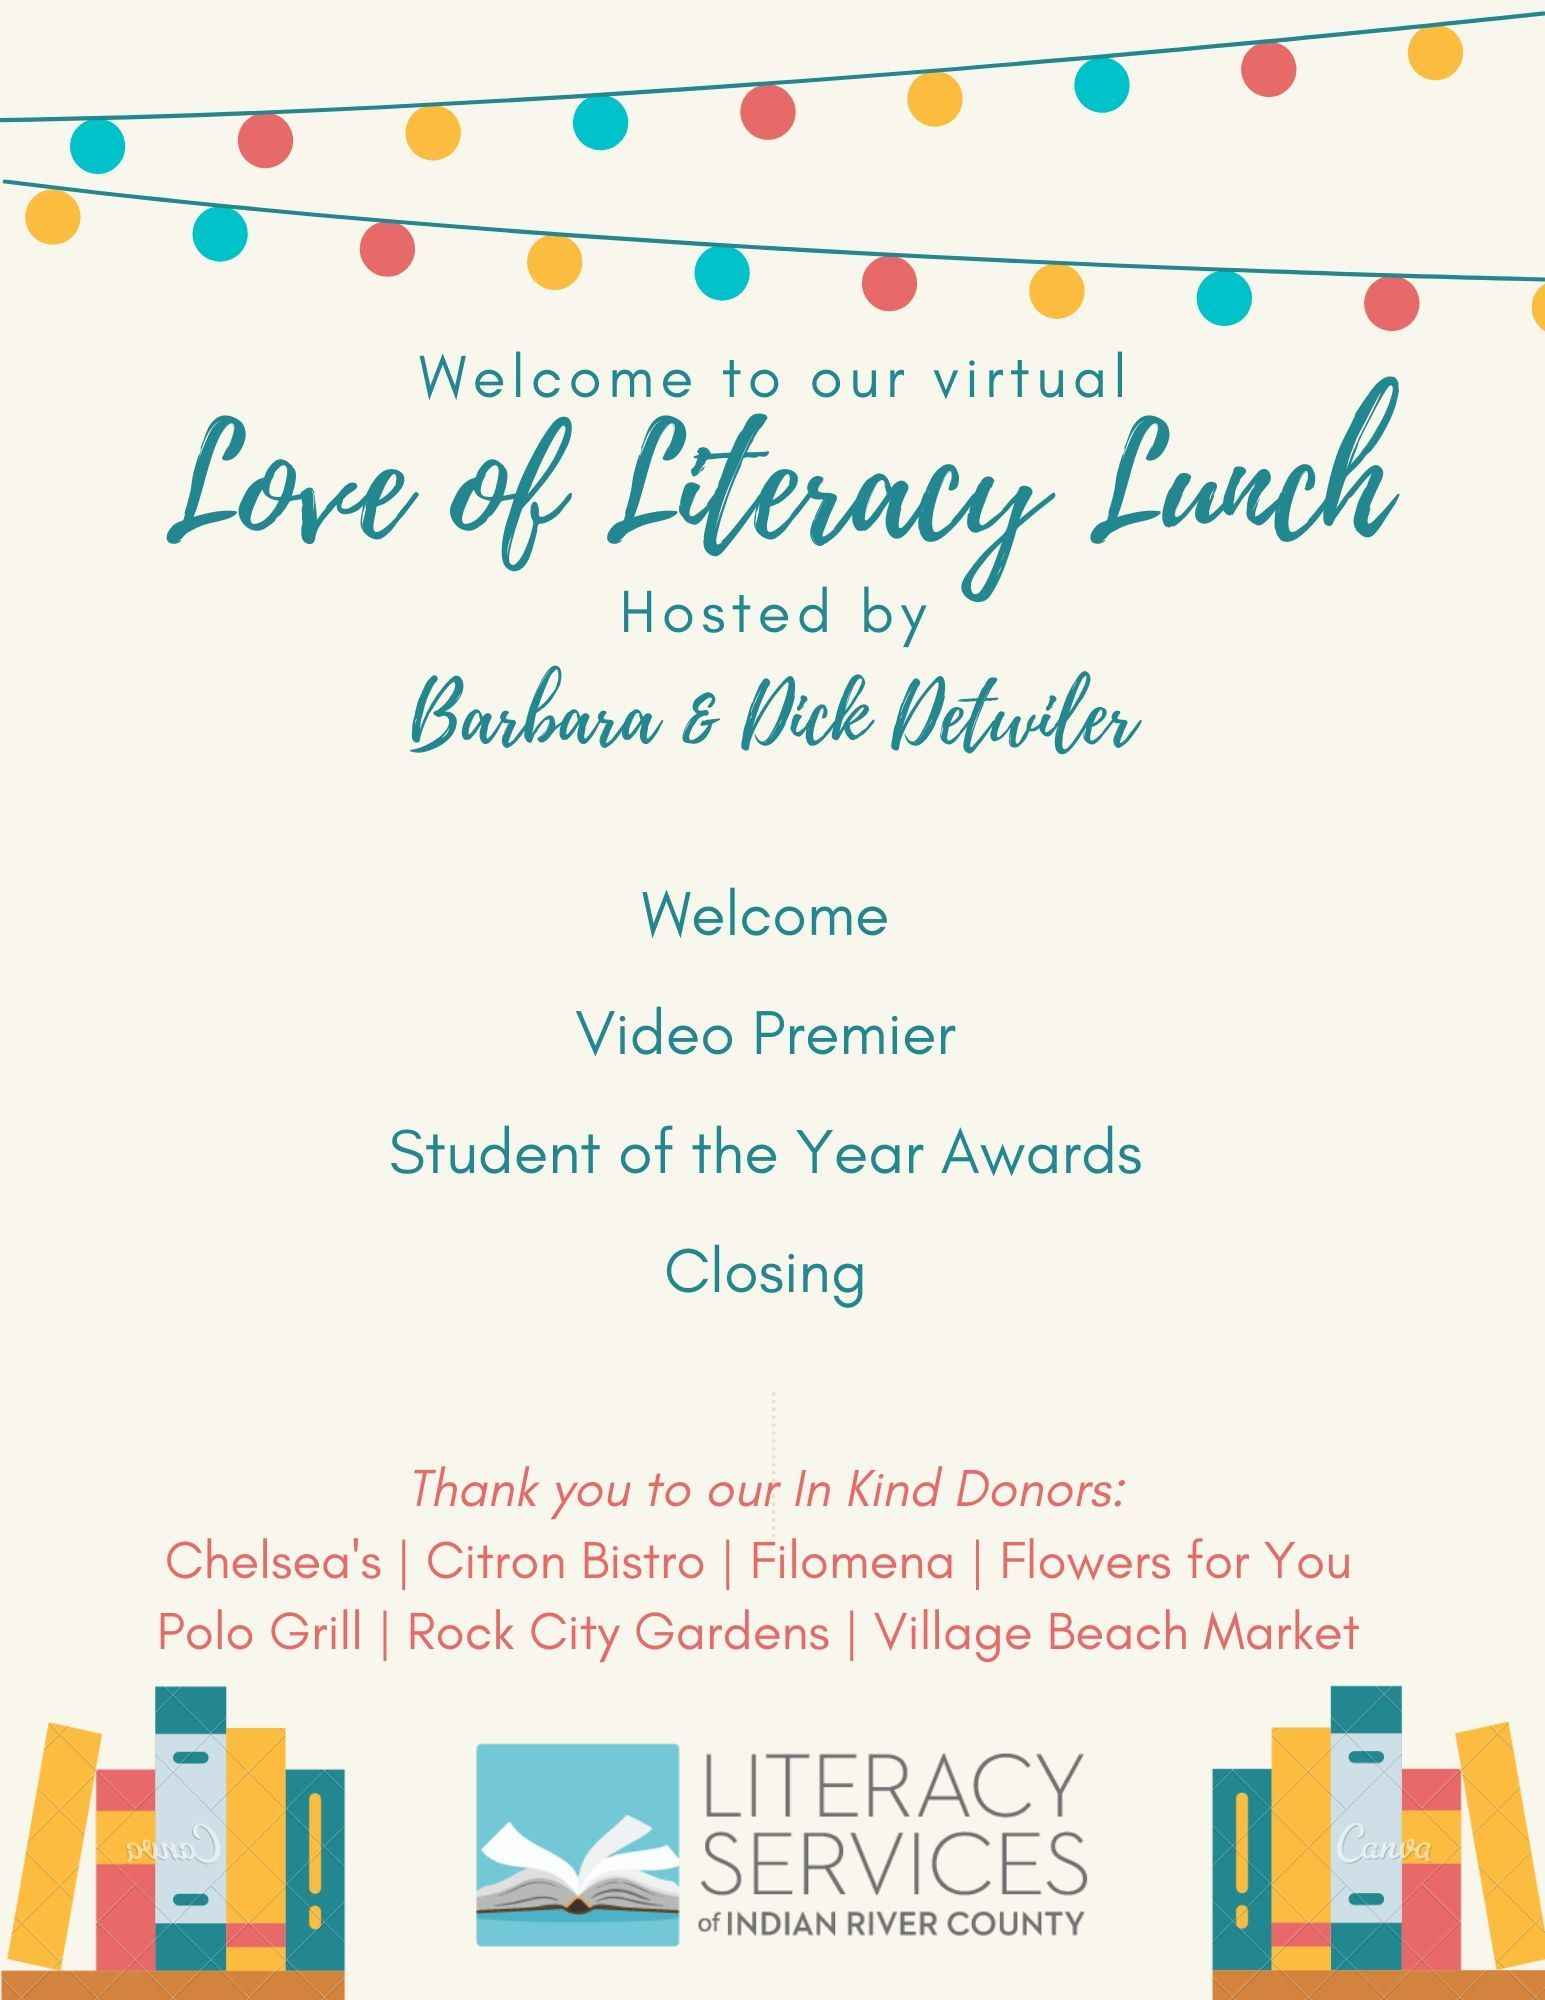 Love of Literacy Luncheon 2020 image